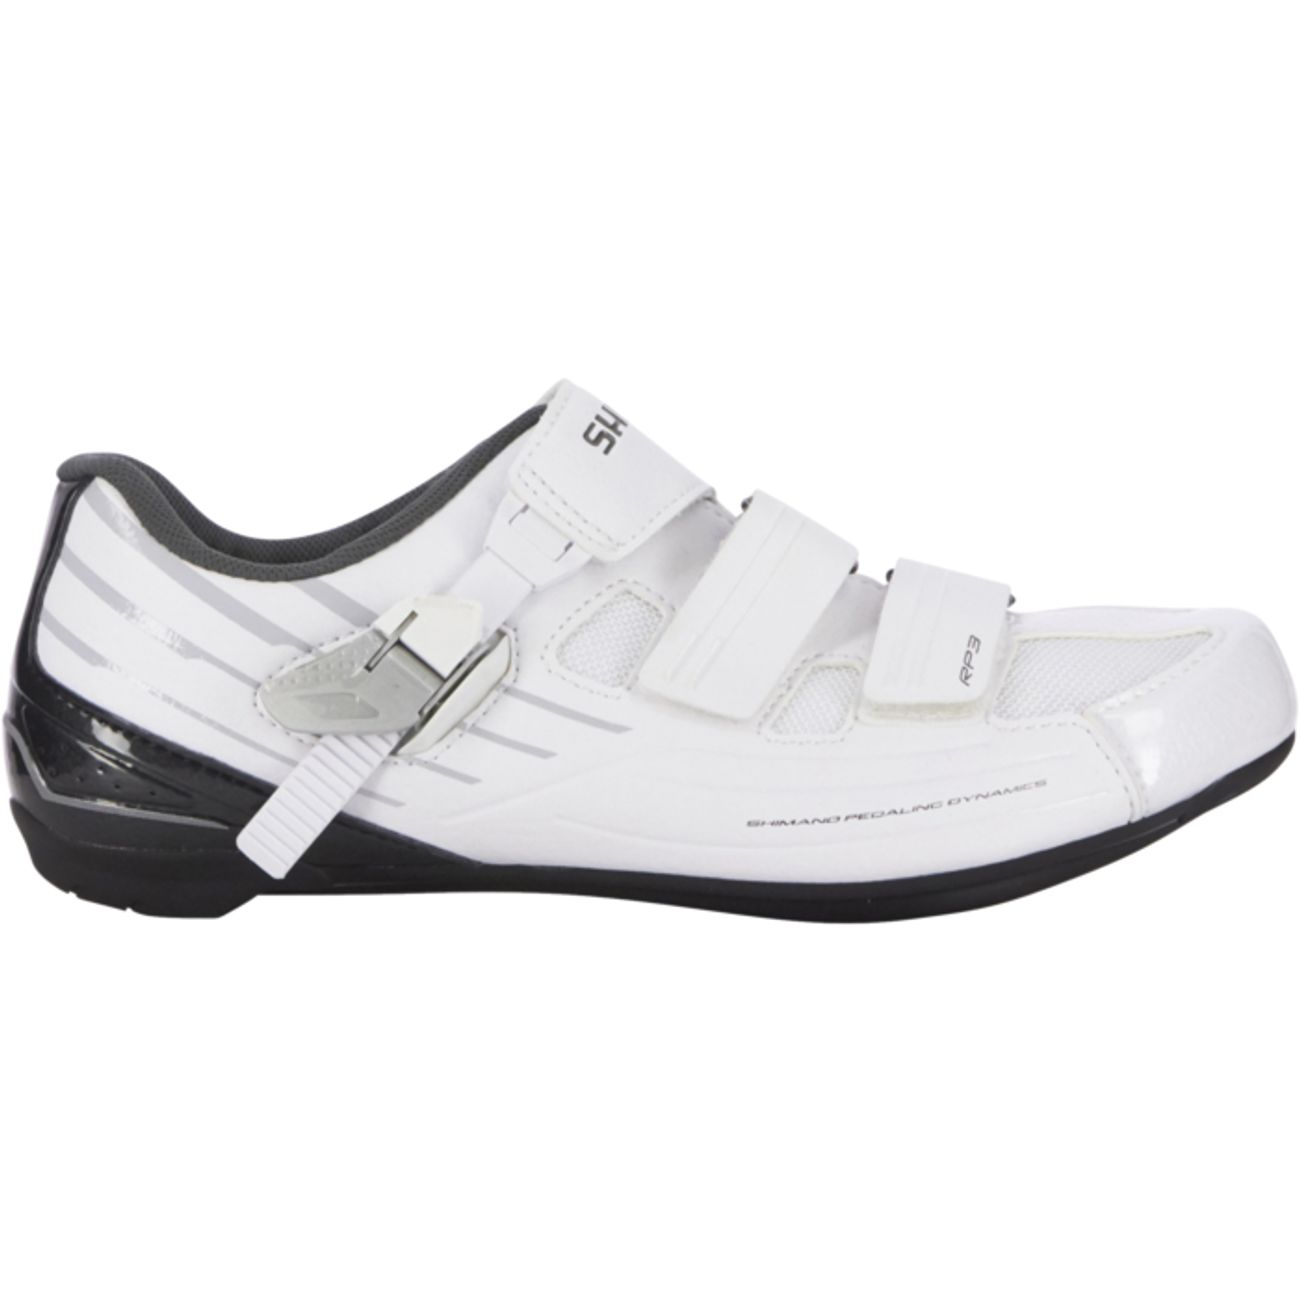 CHAUSSURES Vélo  SHIMANO CHAUSSURE RP300